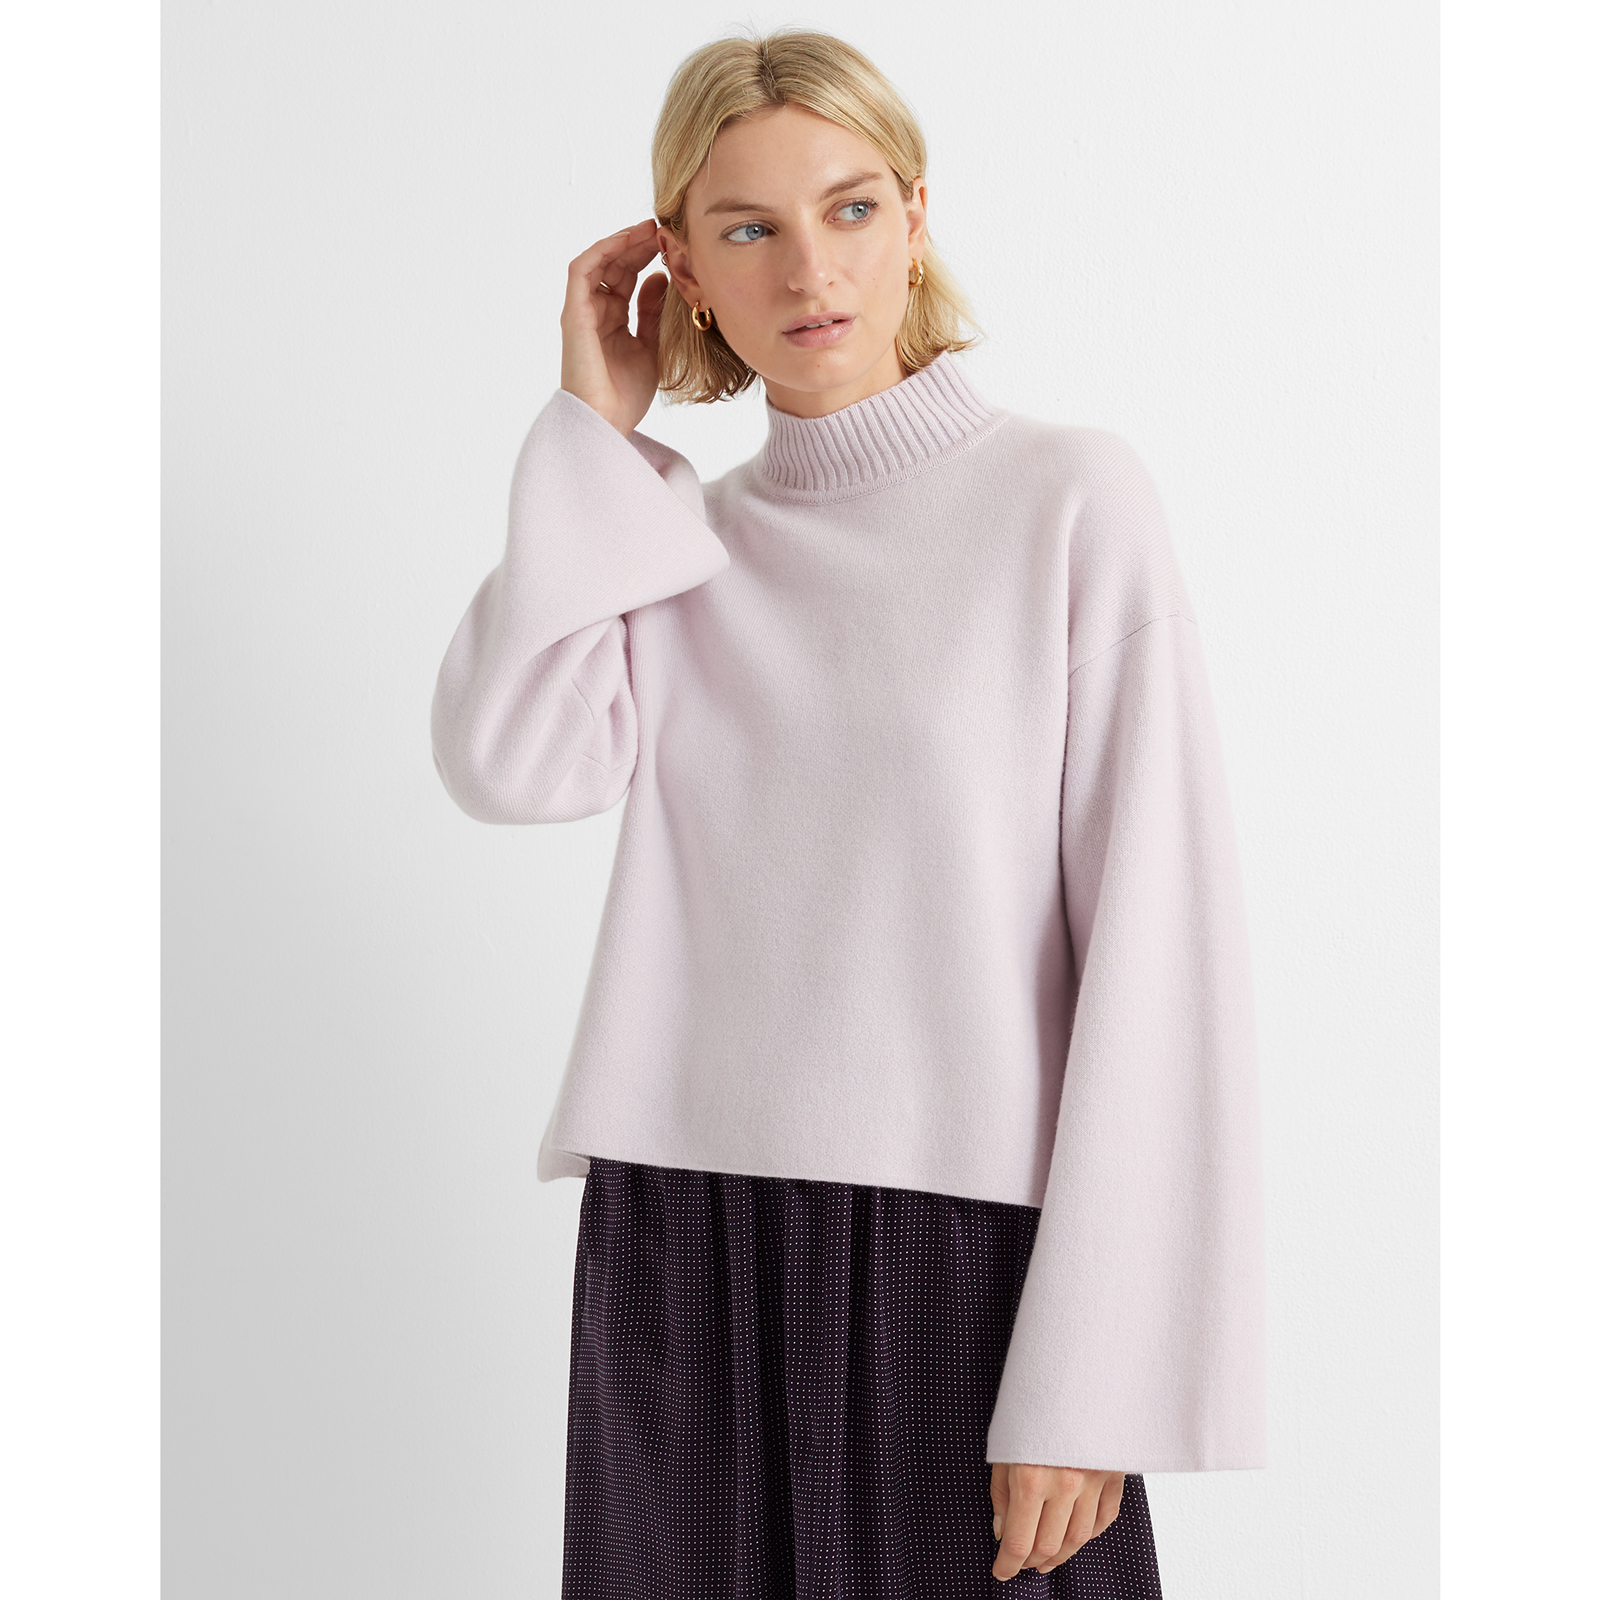 Club Monaco Lillean Cashmere Sweater